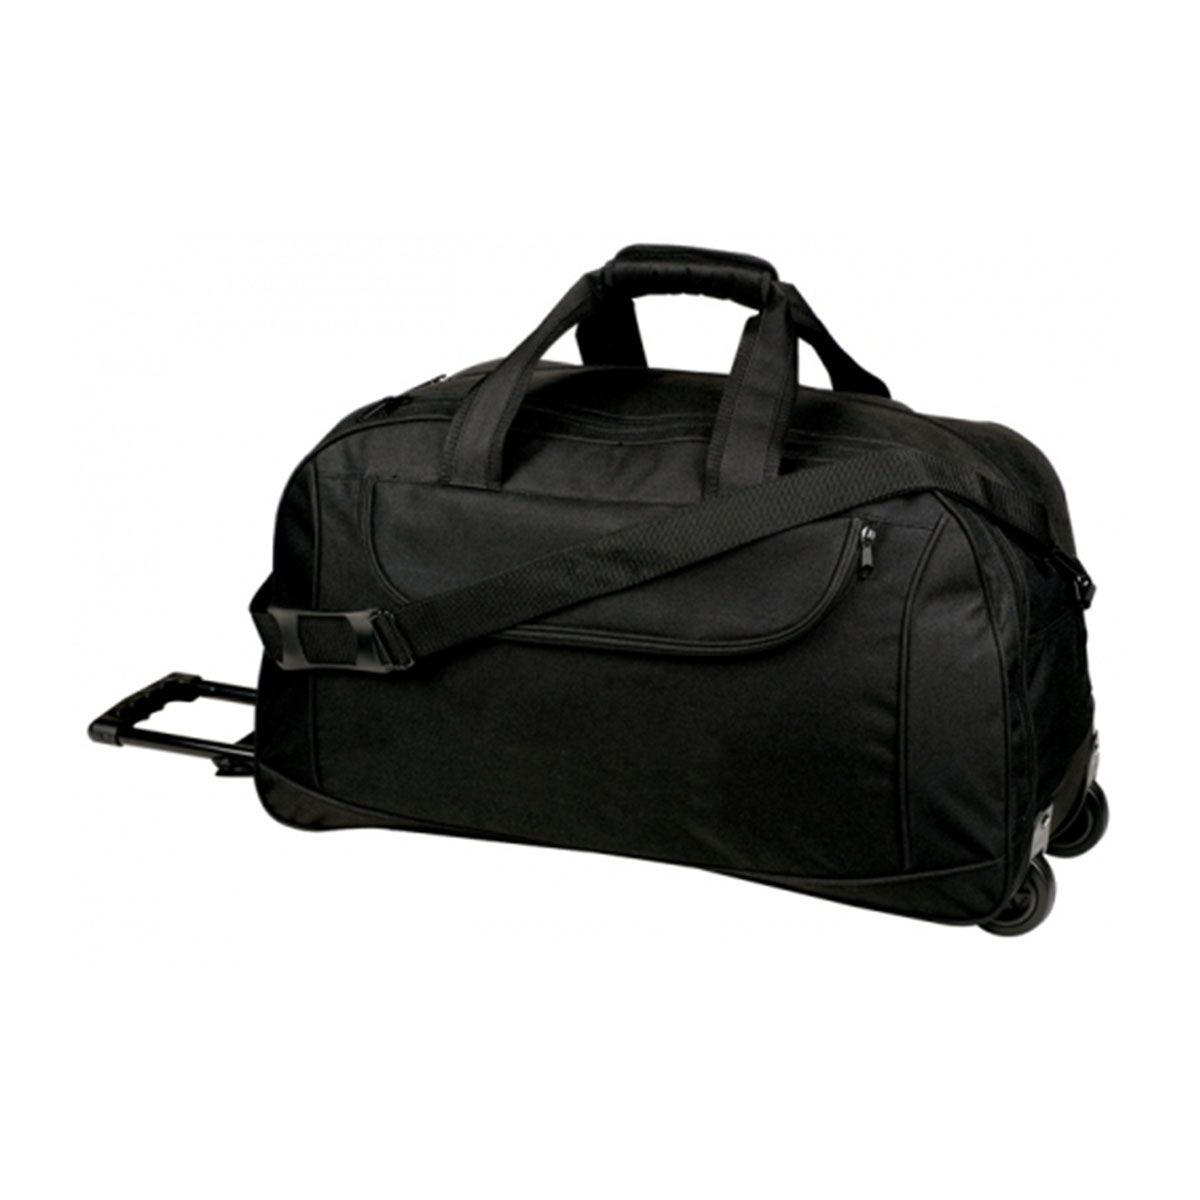 Trolly Travel Bag-Black